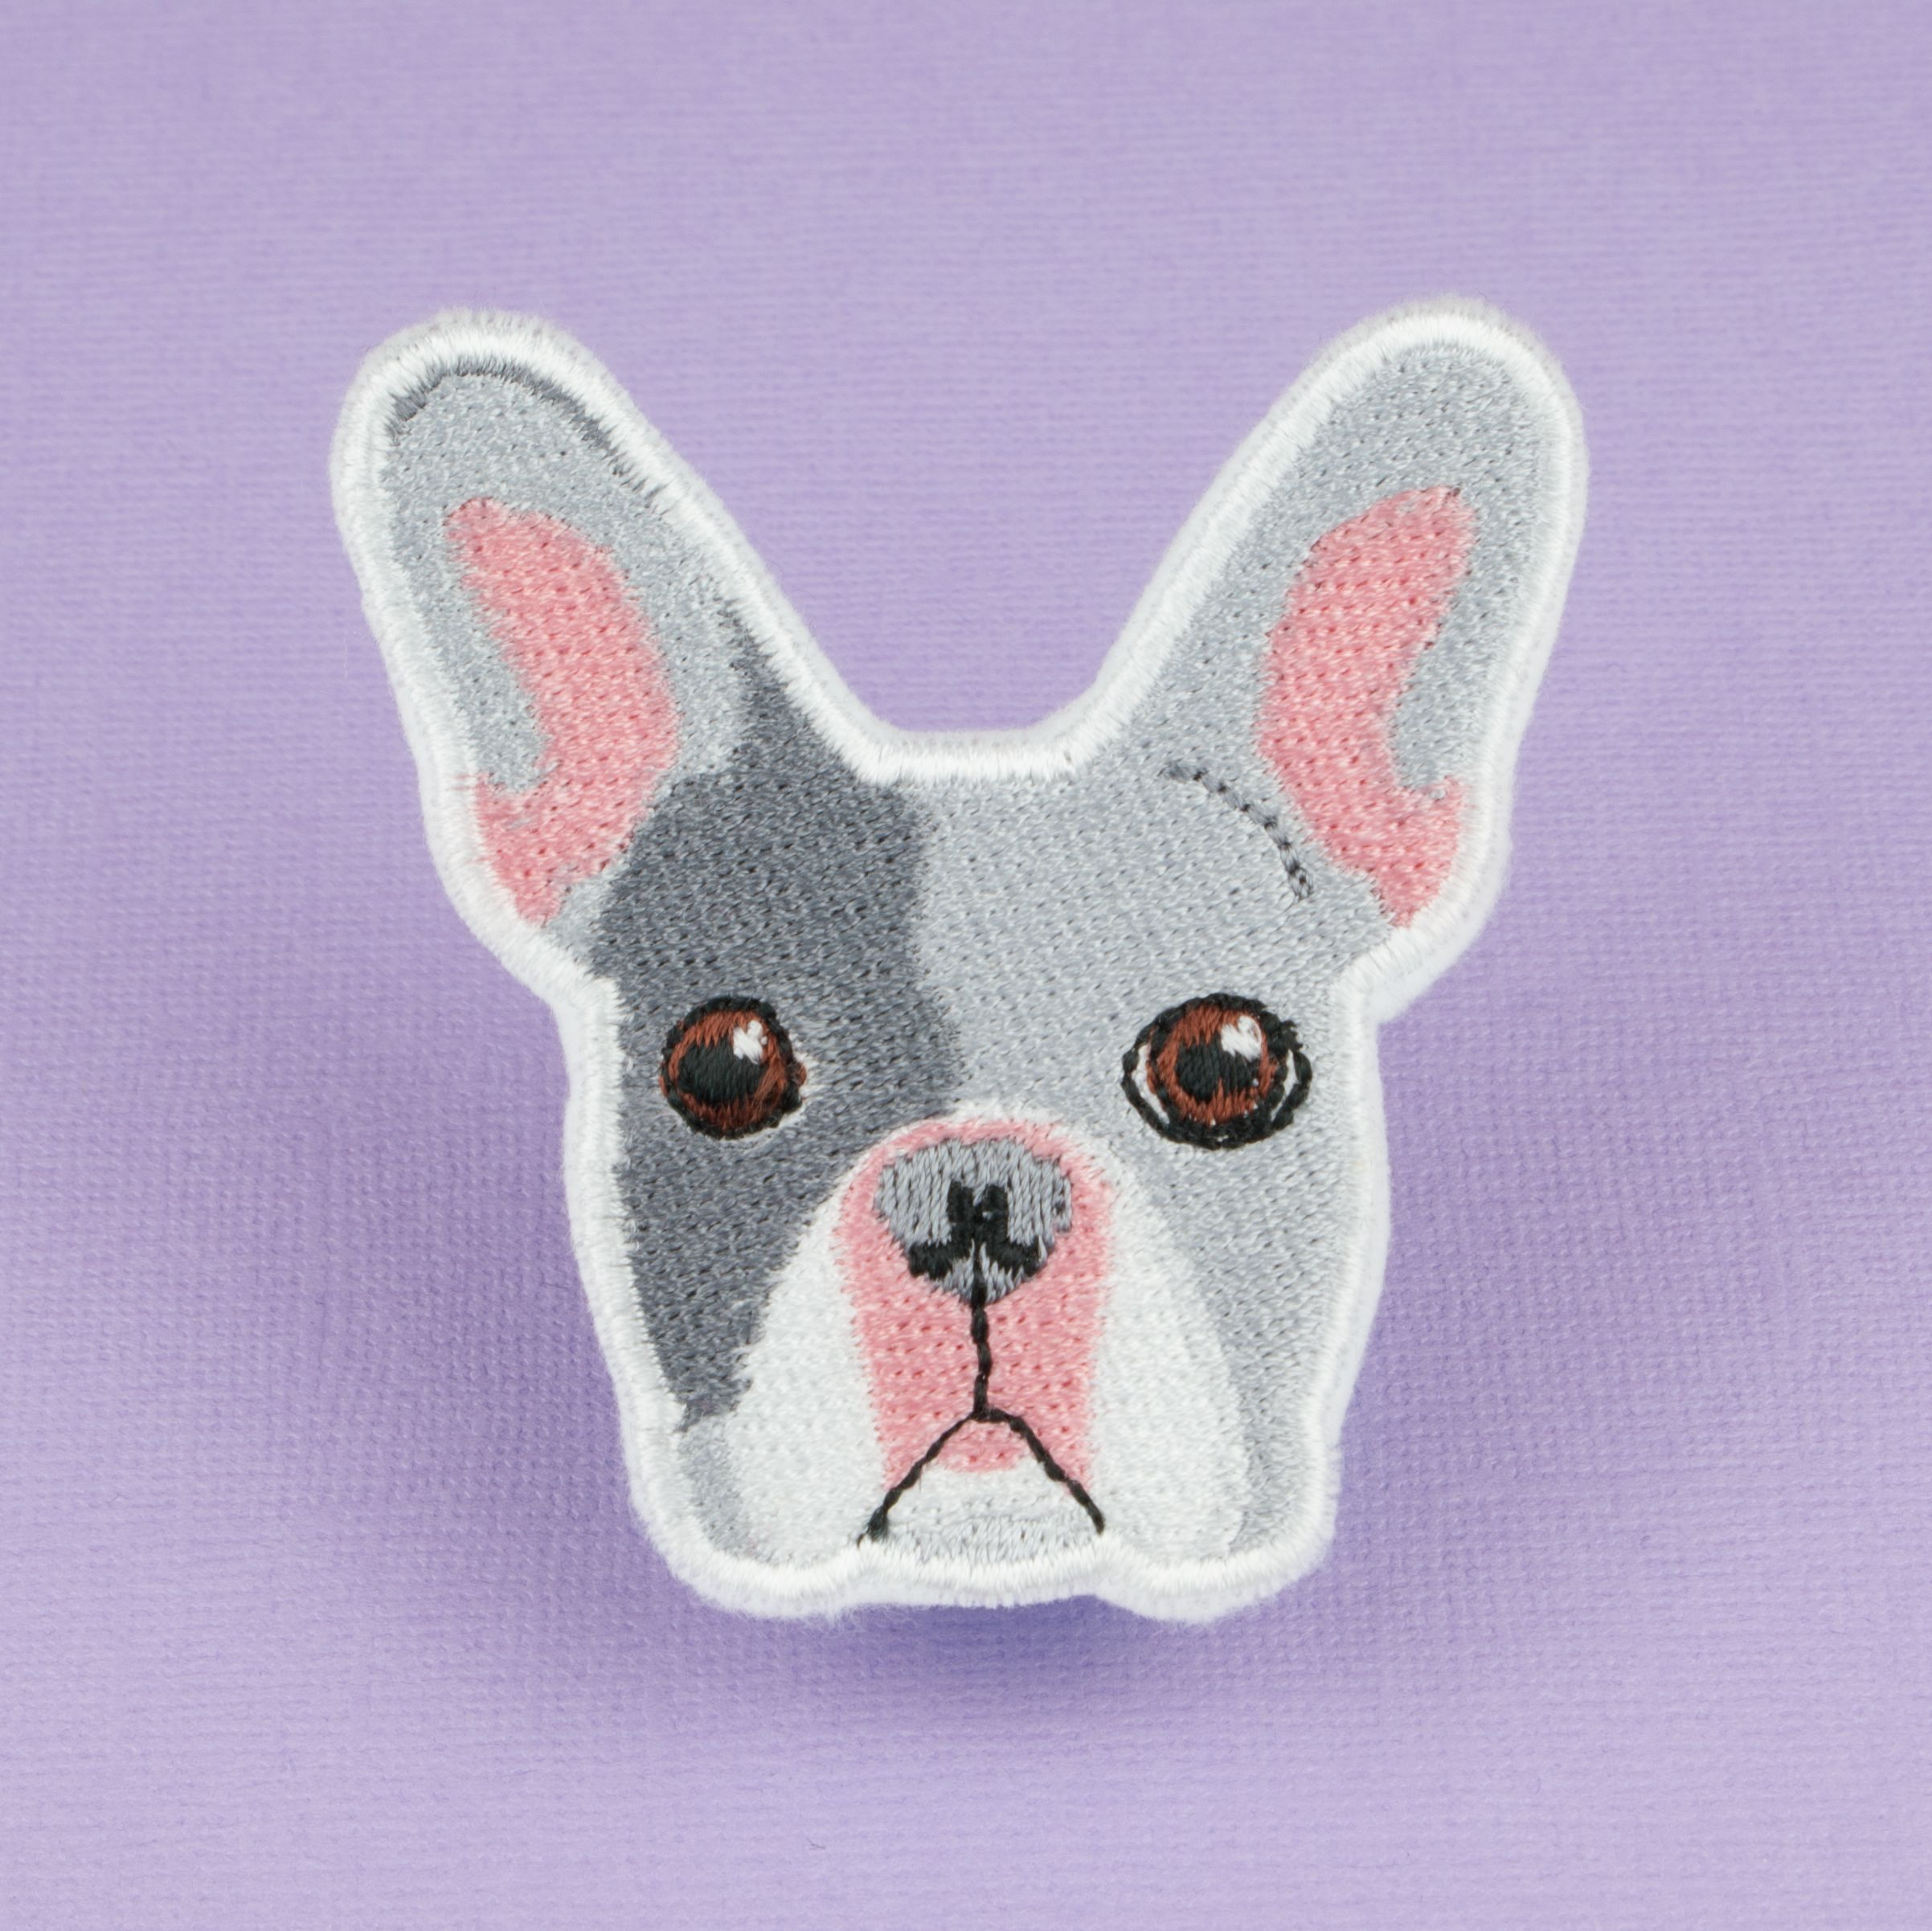 Boston Terrier Dog Embroidered Patch Applique Iron Sew On Patch Embroidery Punk